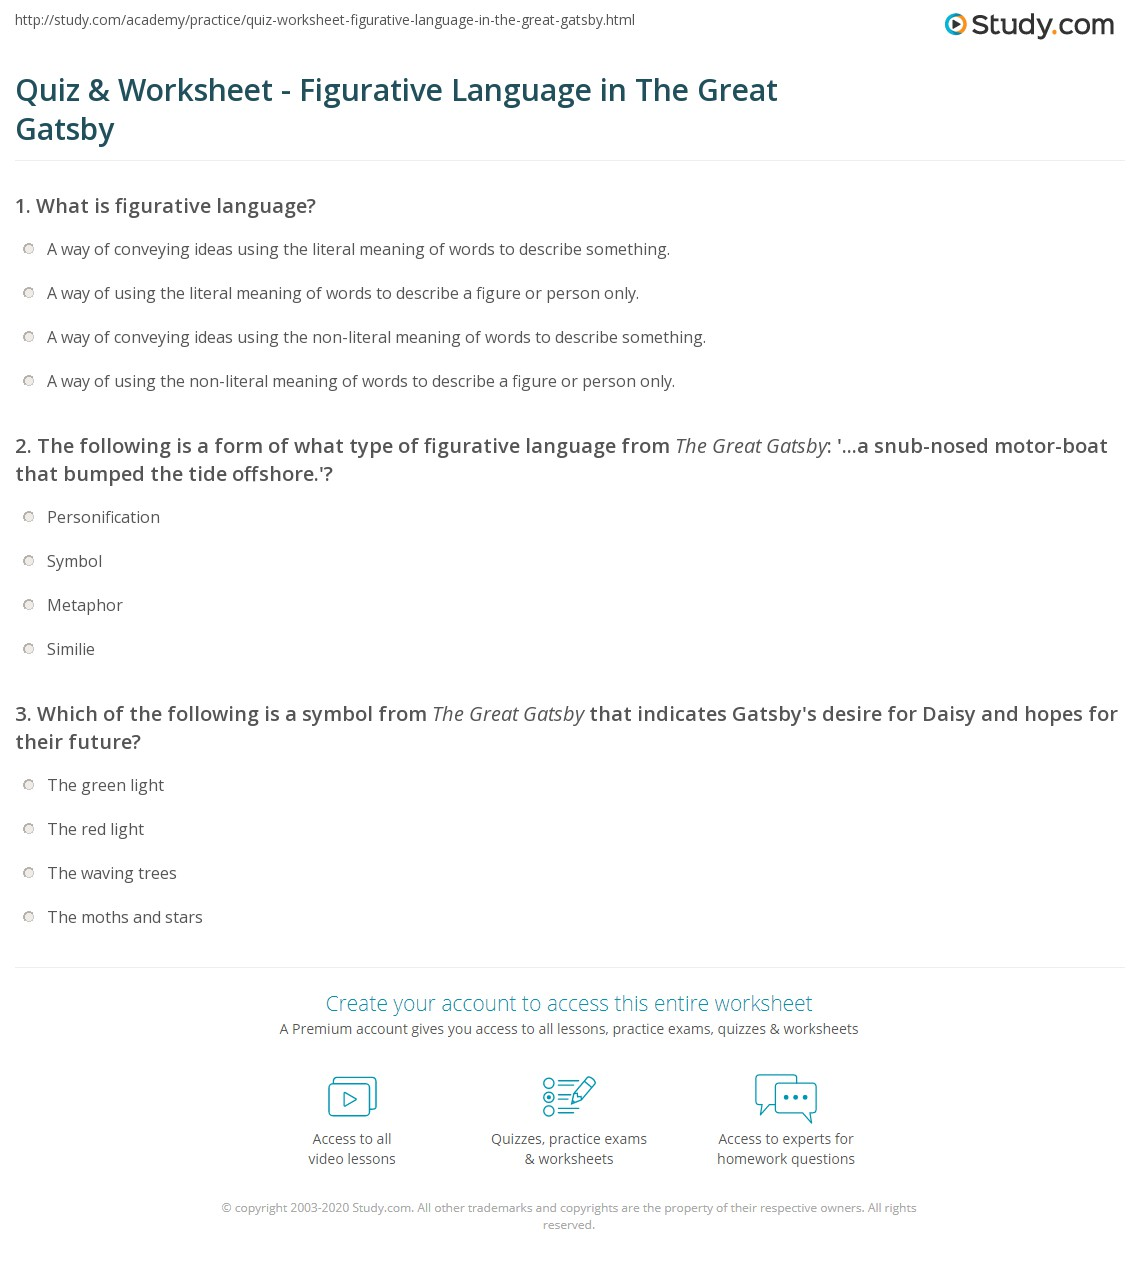 worksheet The Great Gatsby Worksheets quiz worksheet figurative language in the great gatsby study com print worksheet